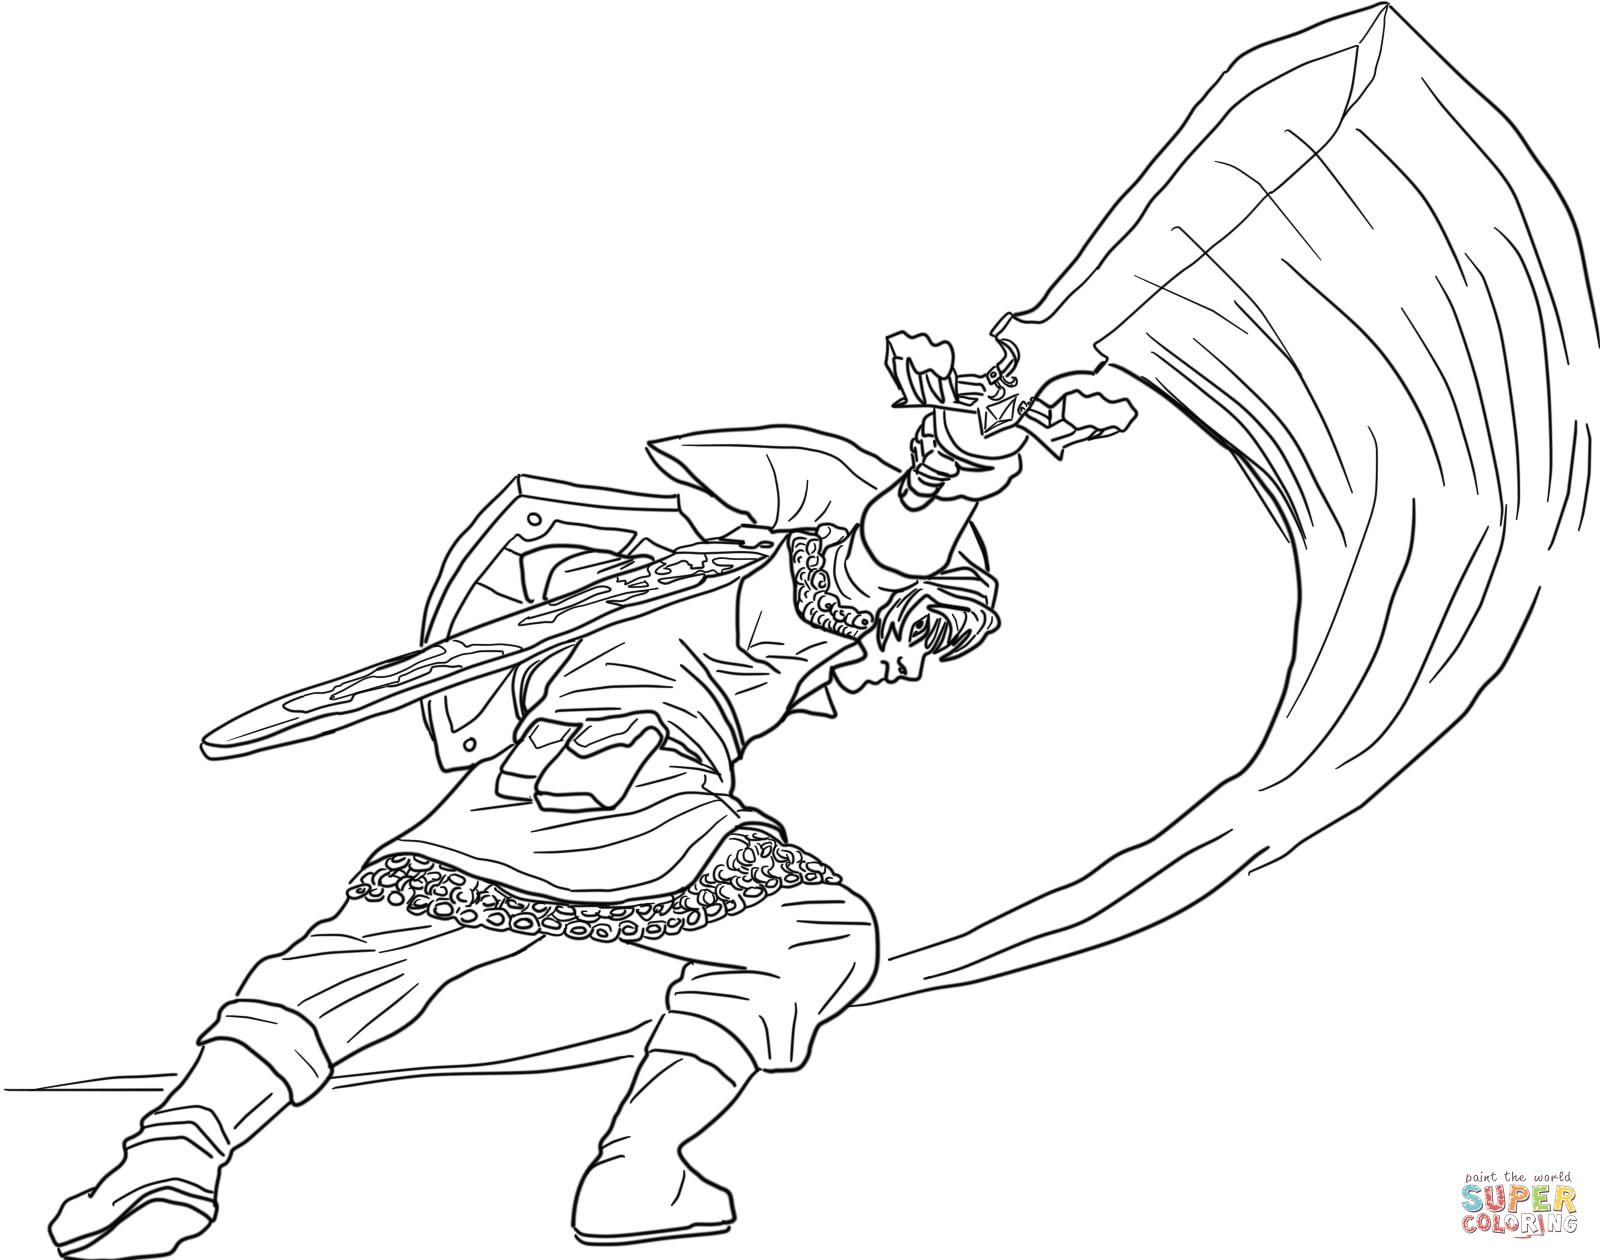 Sword Coloring Pages Coloring Pages Cute Coloring Pages Coloring Books